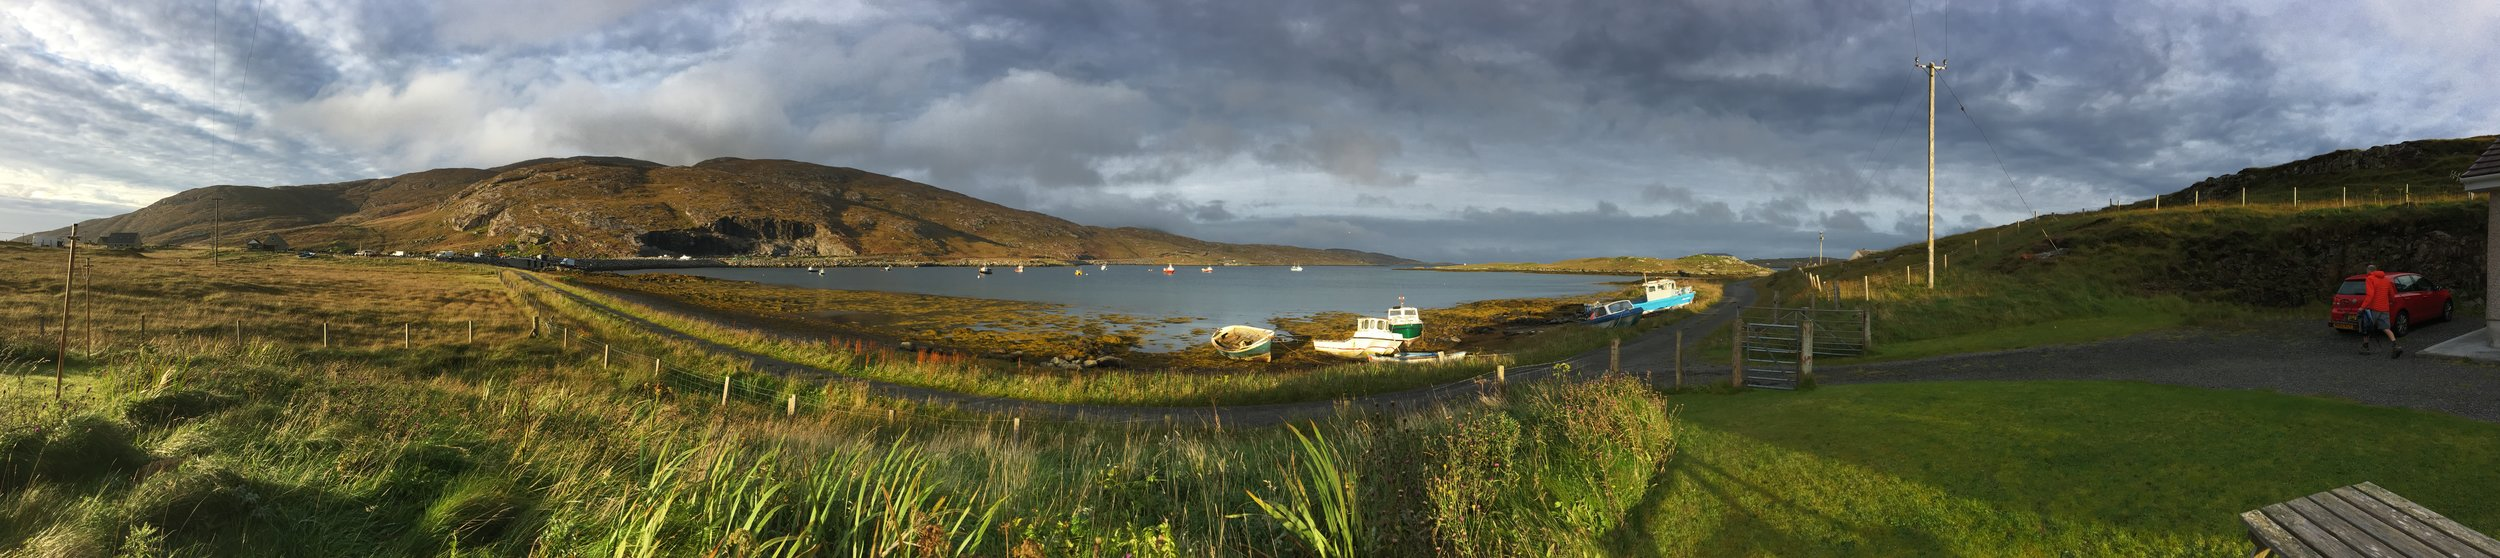 View from the cottage garden on Vatersay